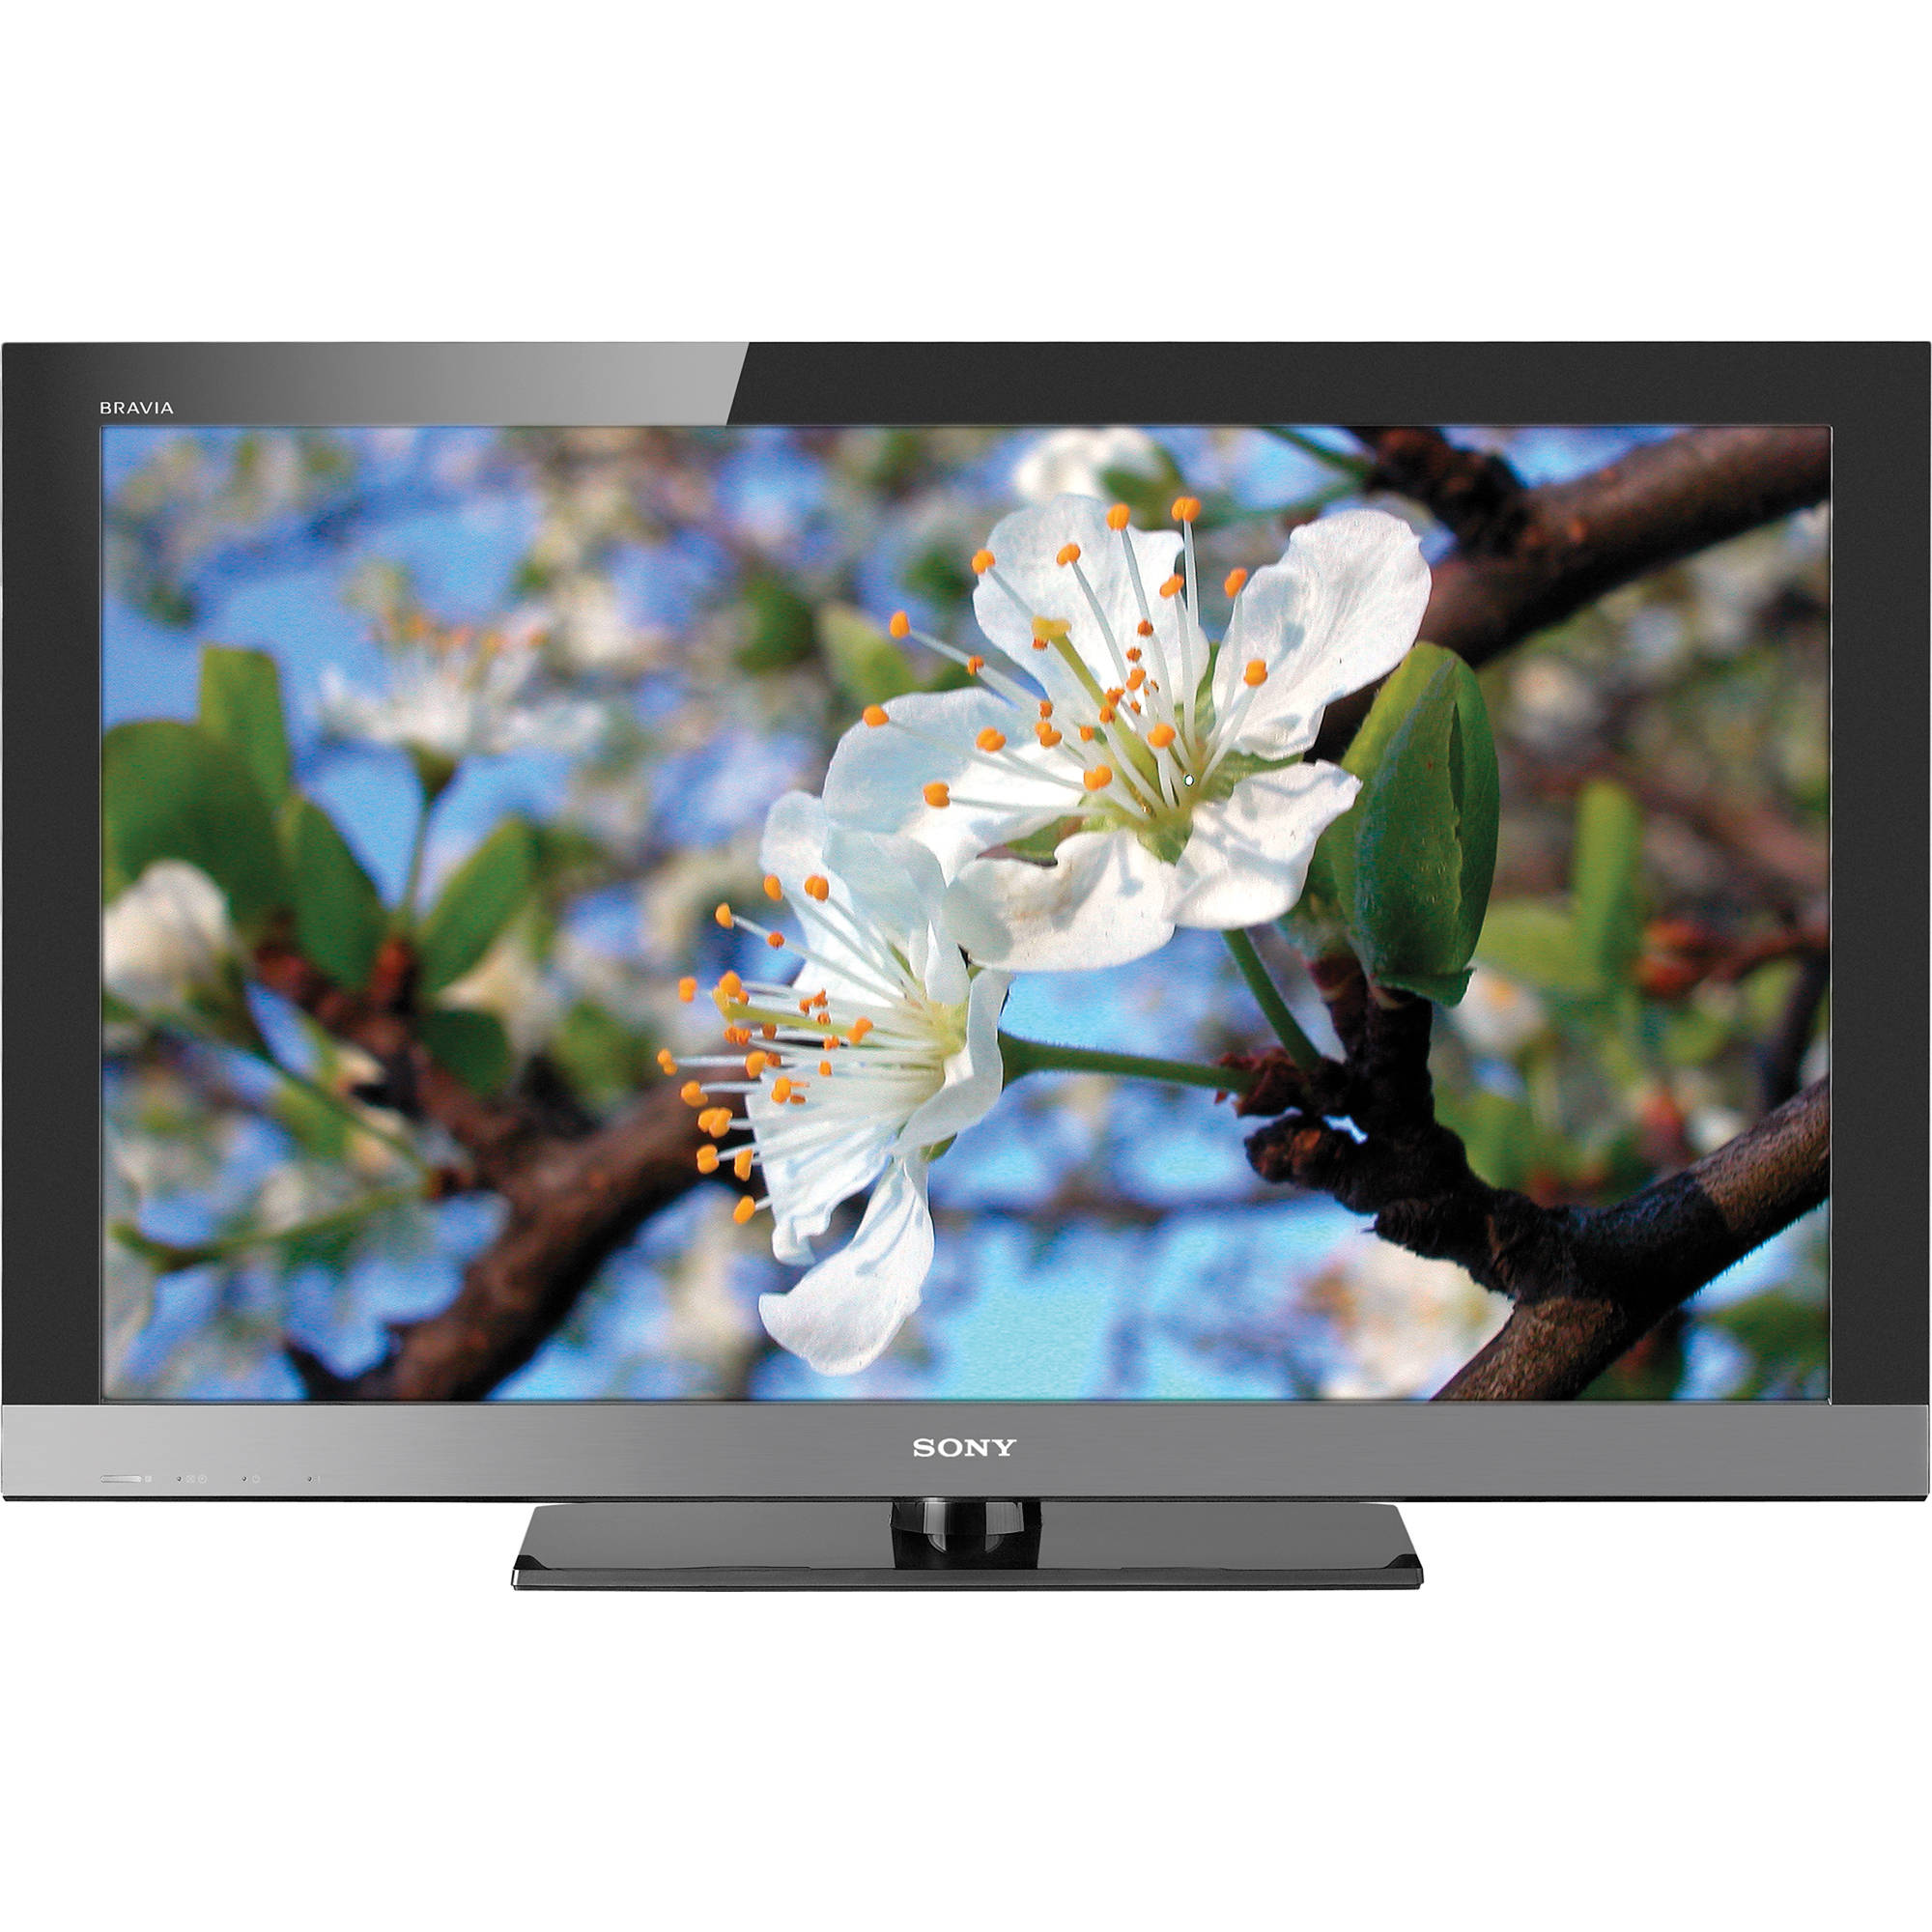 Sony BRAVIA KDL-40EX700 HDTV Drivers Download Free